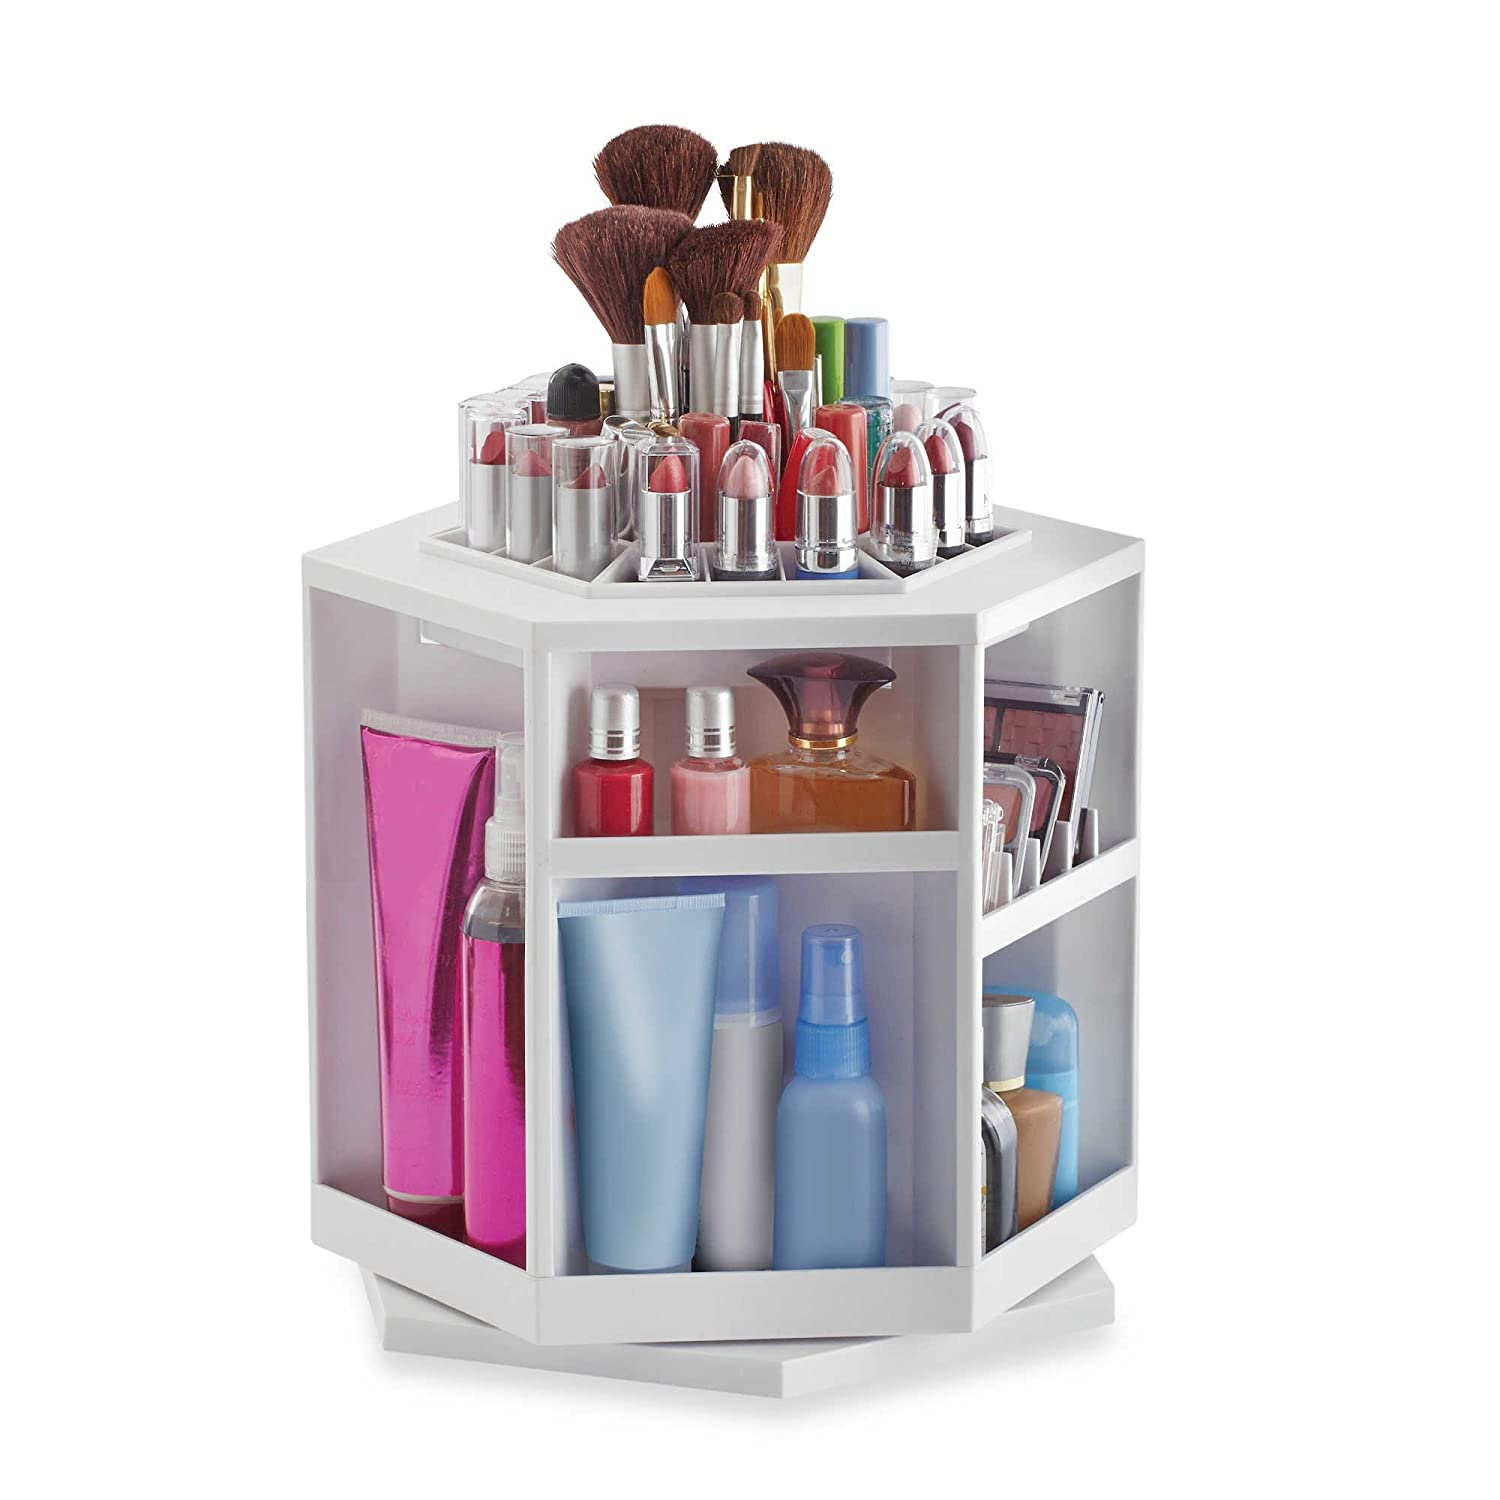 Design Cosmetic Organizer amazon com lori spinning cosmetic organizer in white beauty